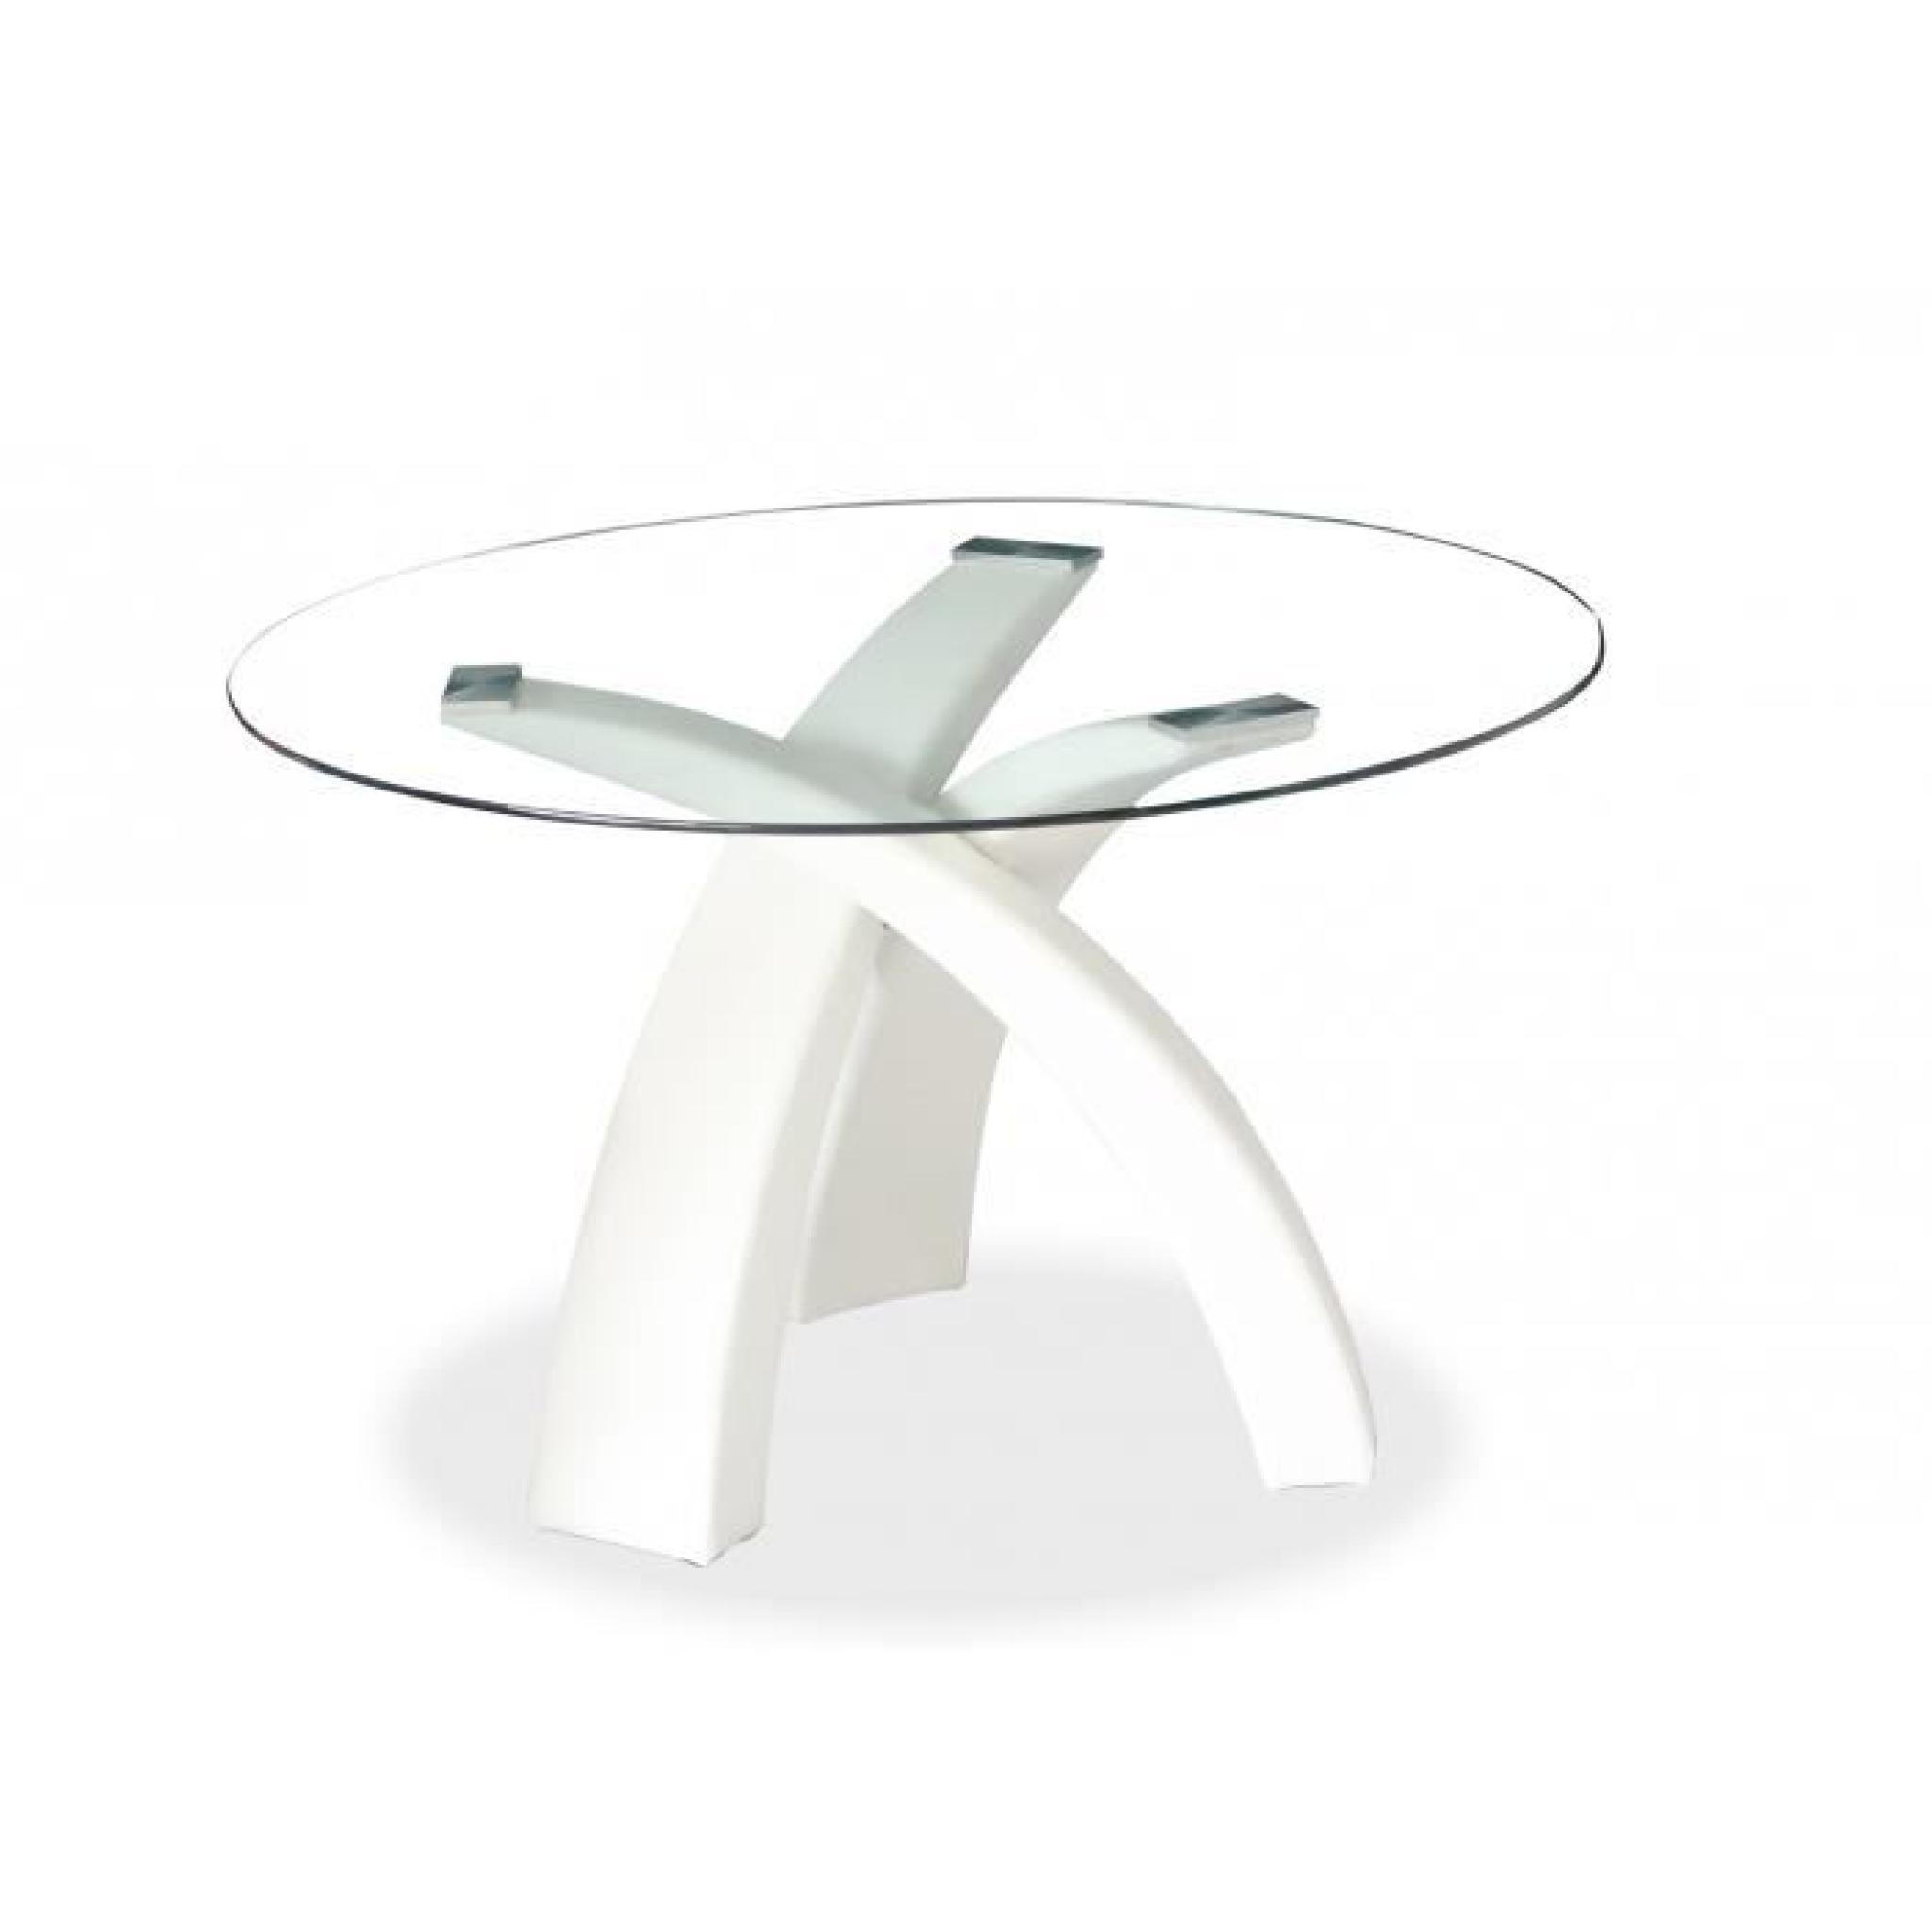 Table manger ronde blanche gore achat vente table for Table ronde blanche